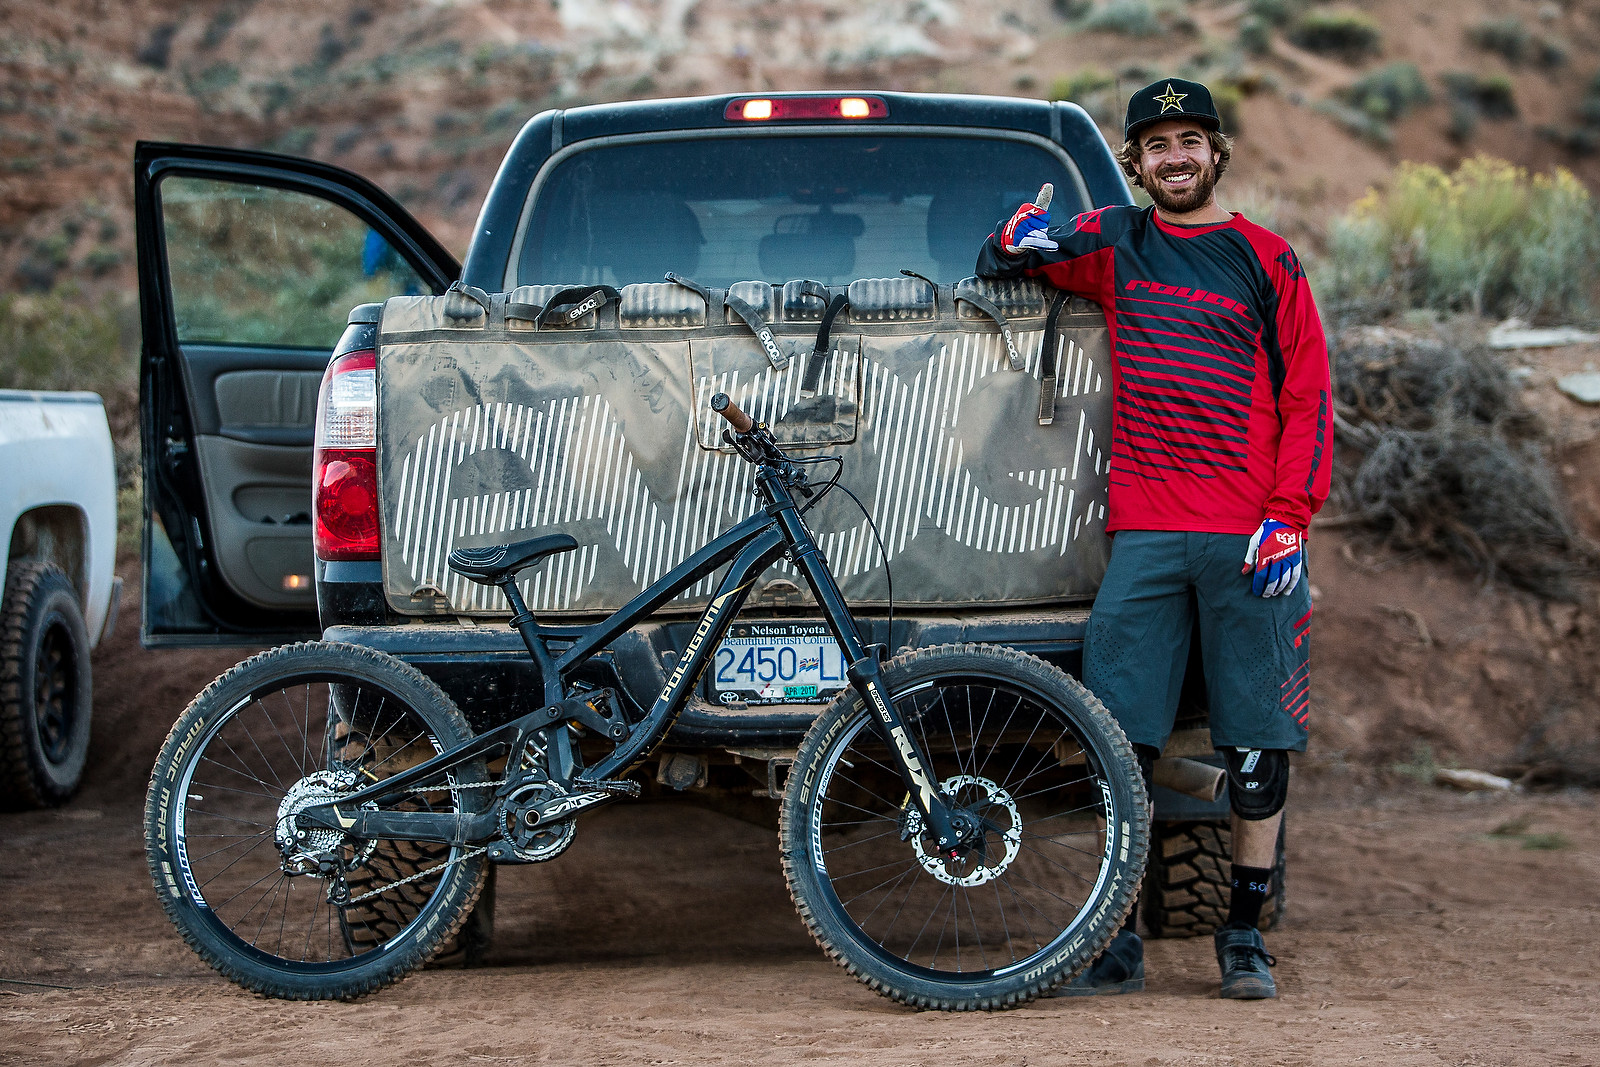 Kurt Sorge and his Polygon Collusus DH9 - Pro Bikes - Red Bull Rampage - Mountain Biking Pictures - Vital MTB